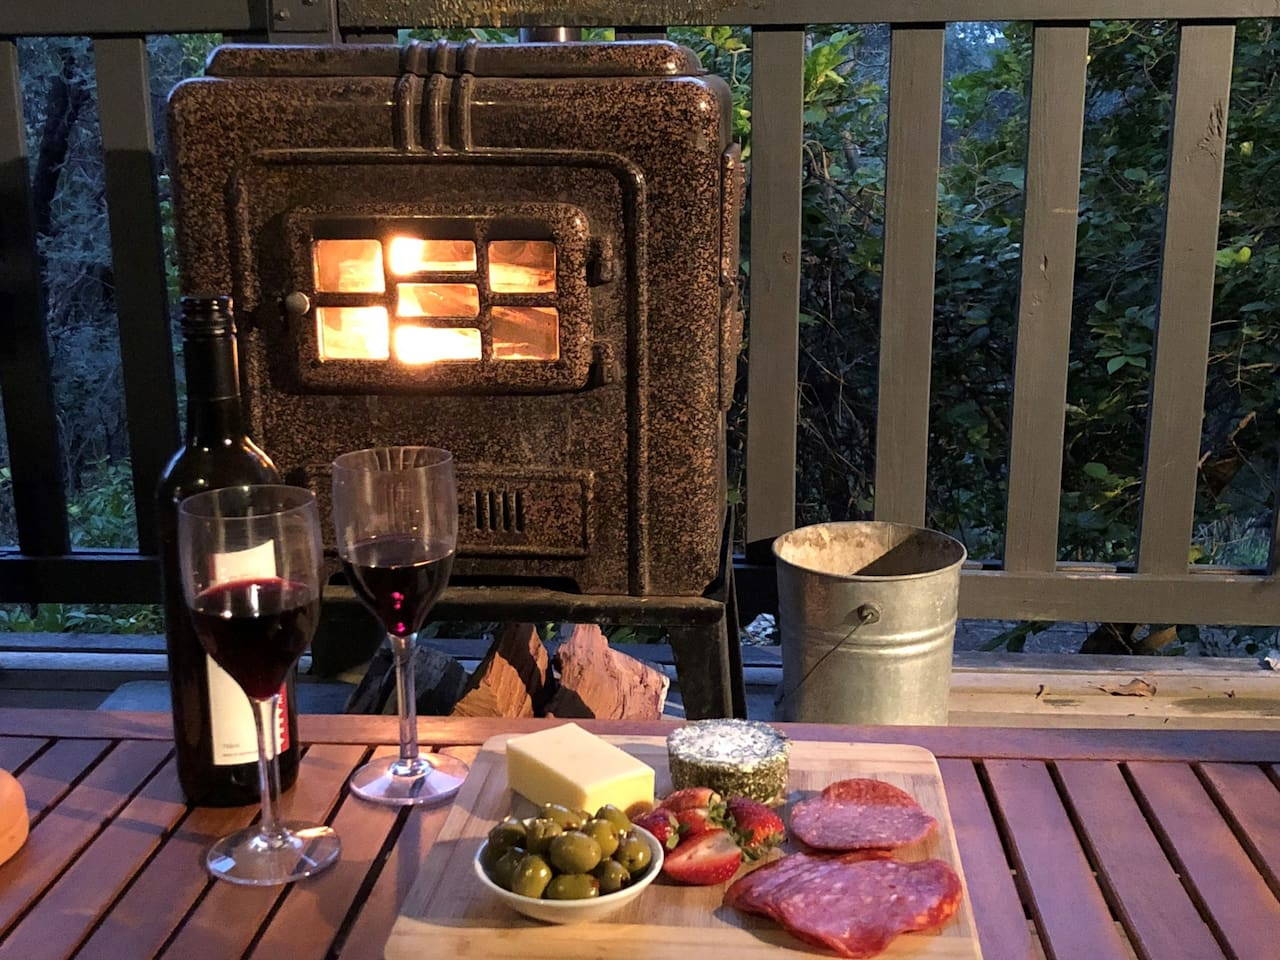 Stare into the flames and relax with a glass of wine at TreeTops.